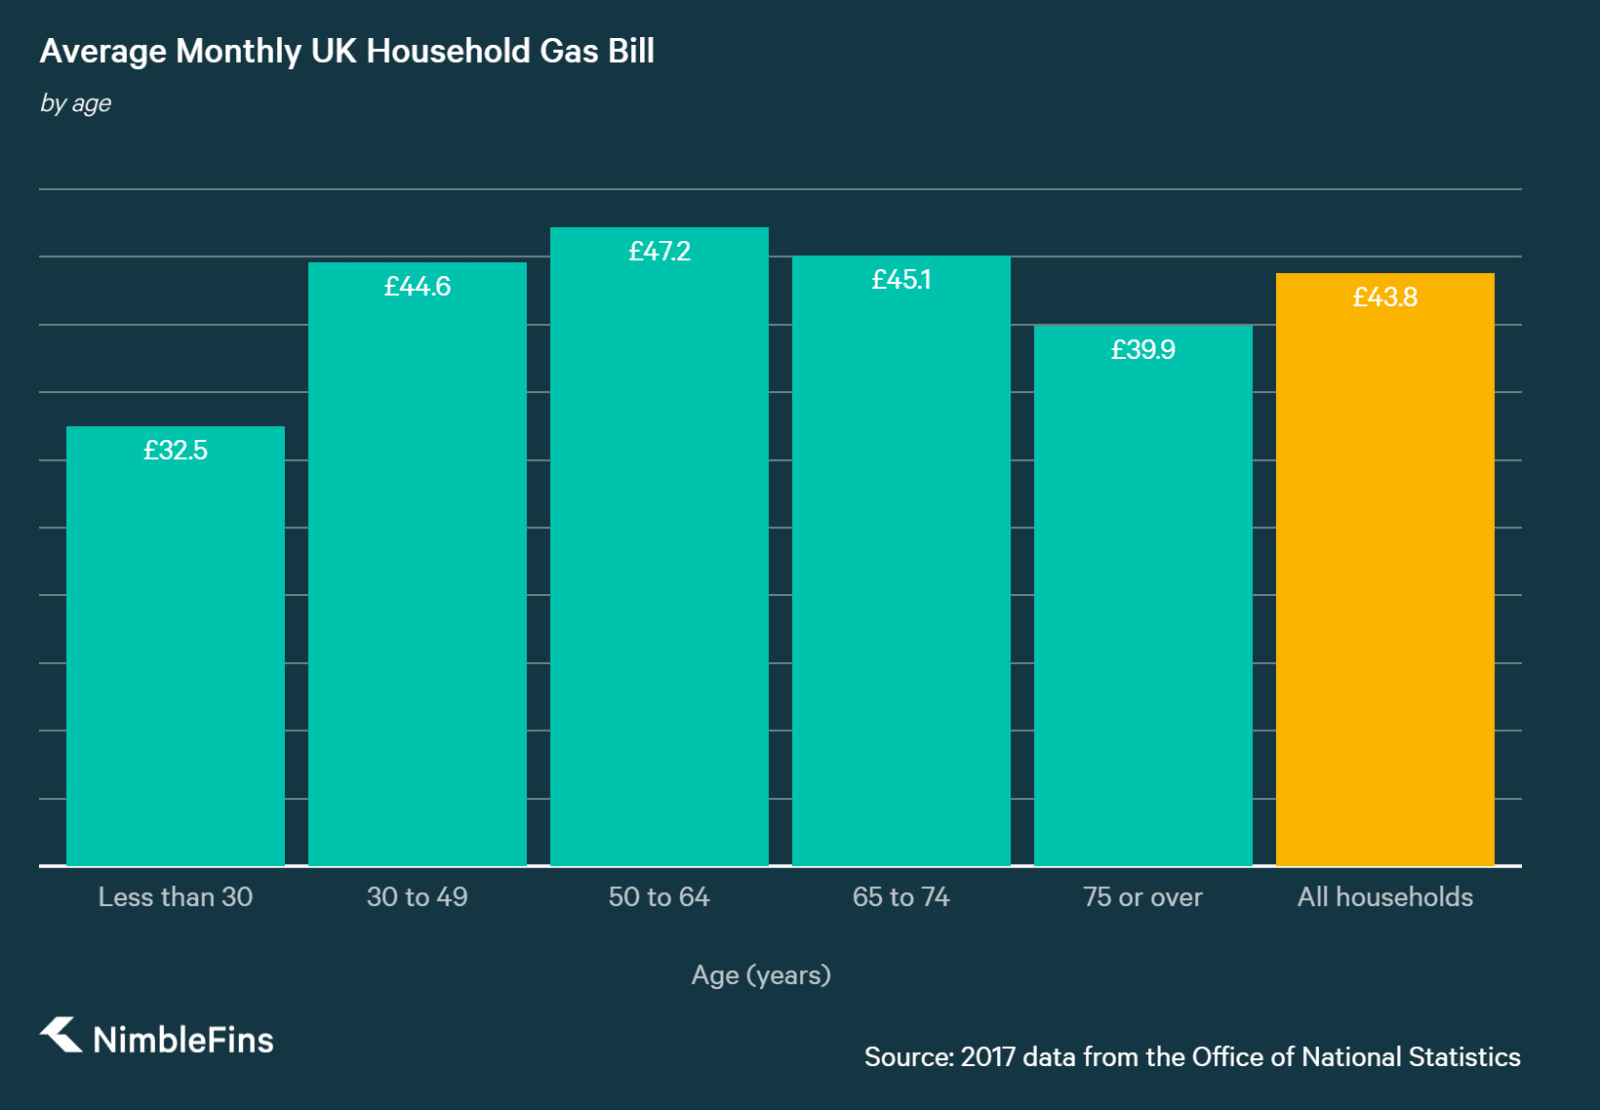 chart of UK household costs of gas by age